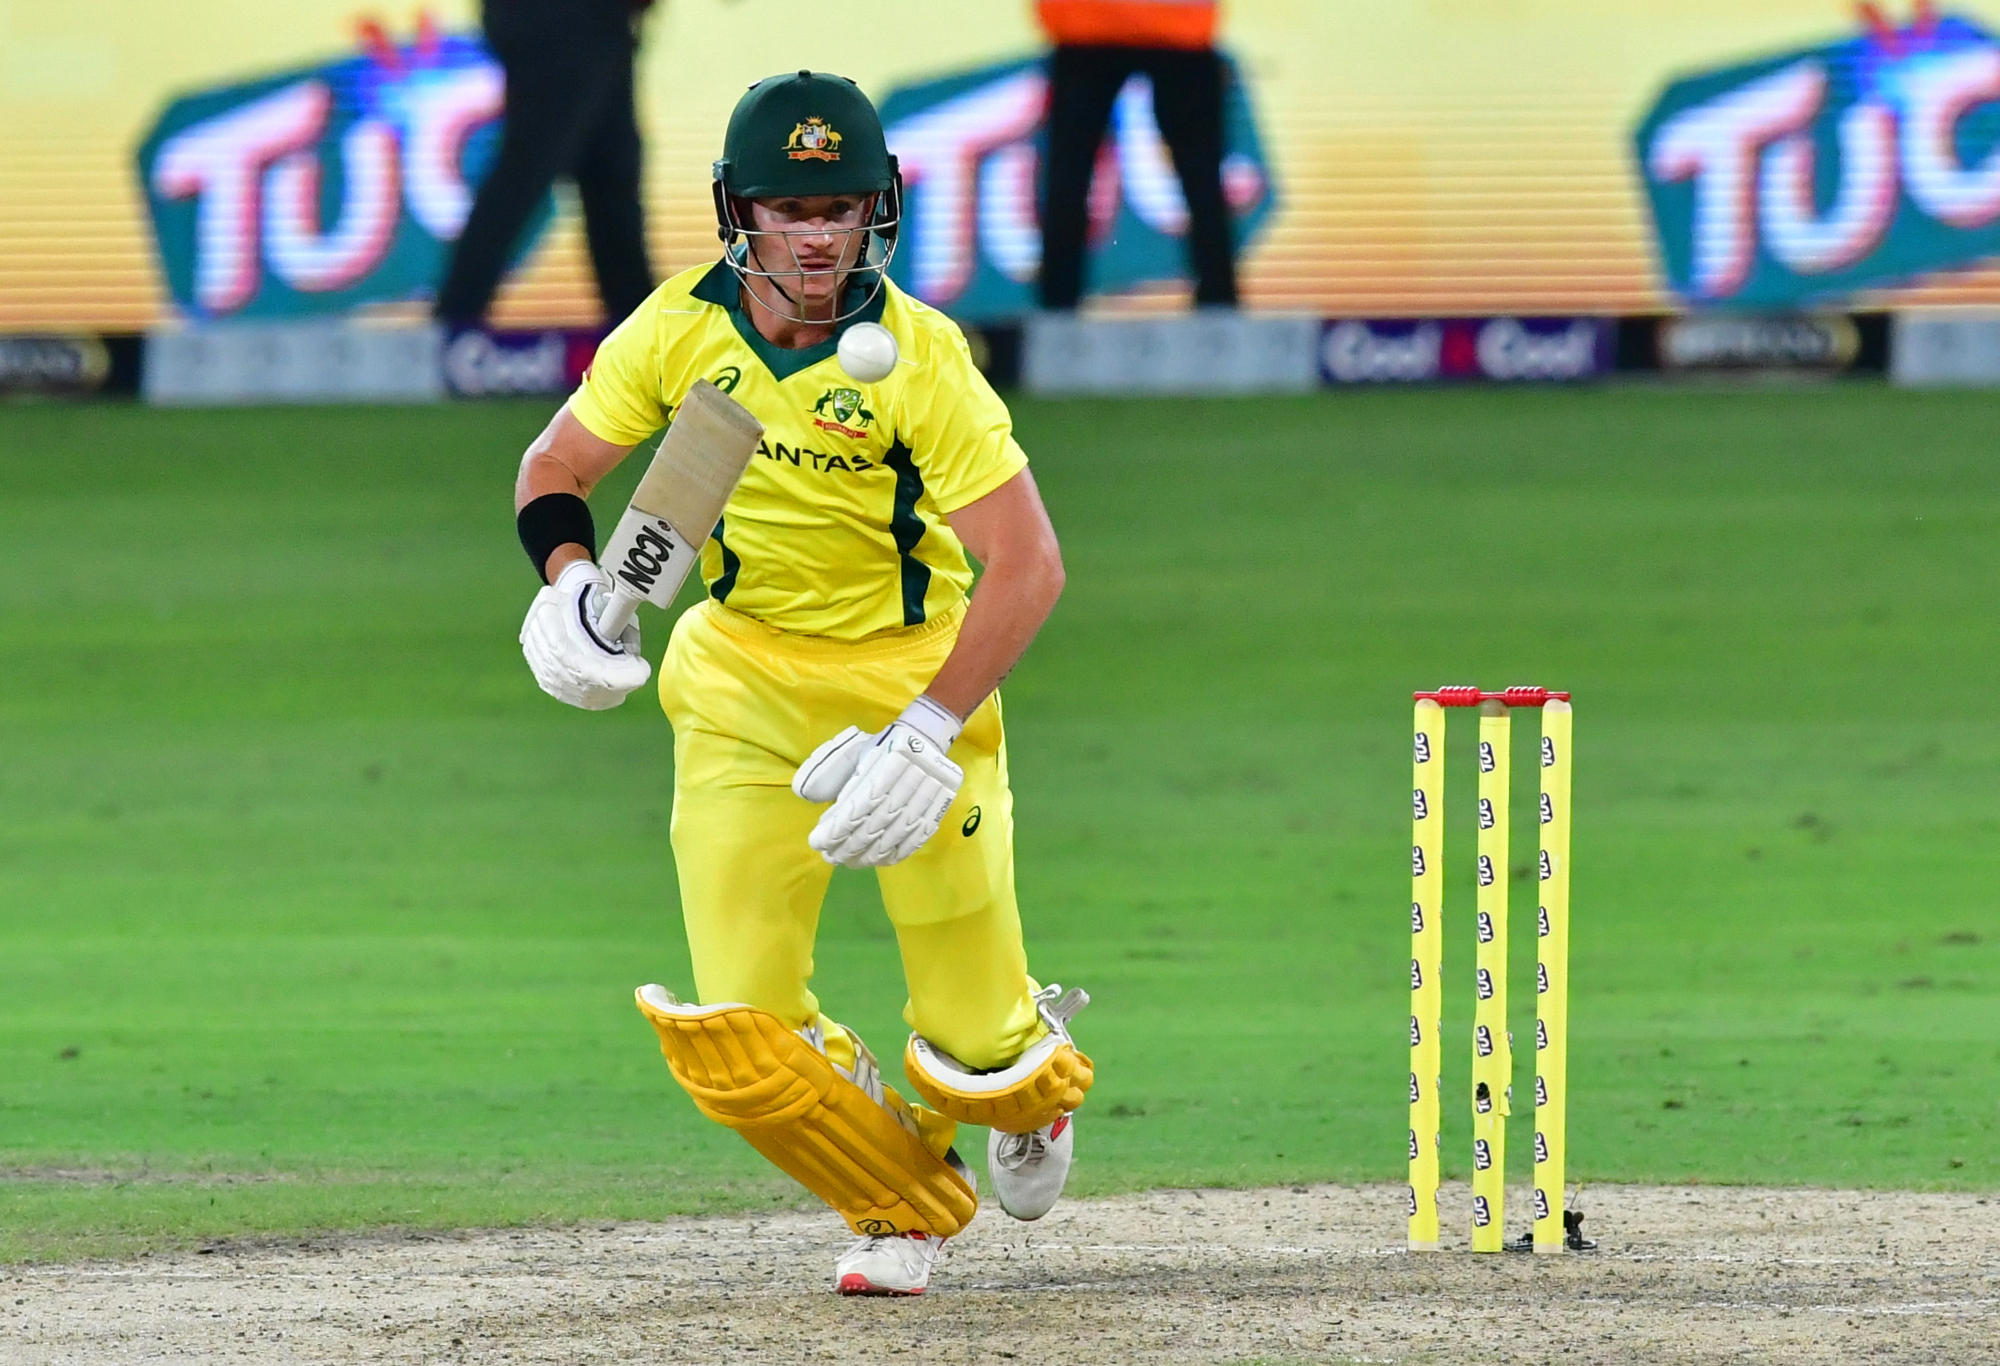 Australian cricketer D'Arcy Short plays a shot